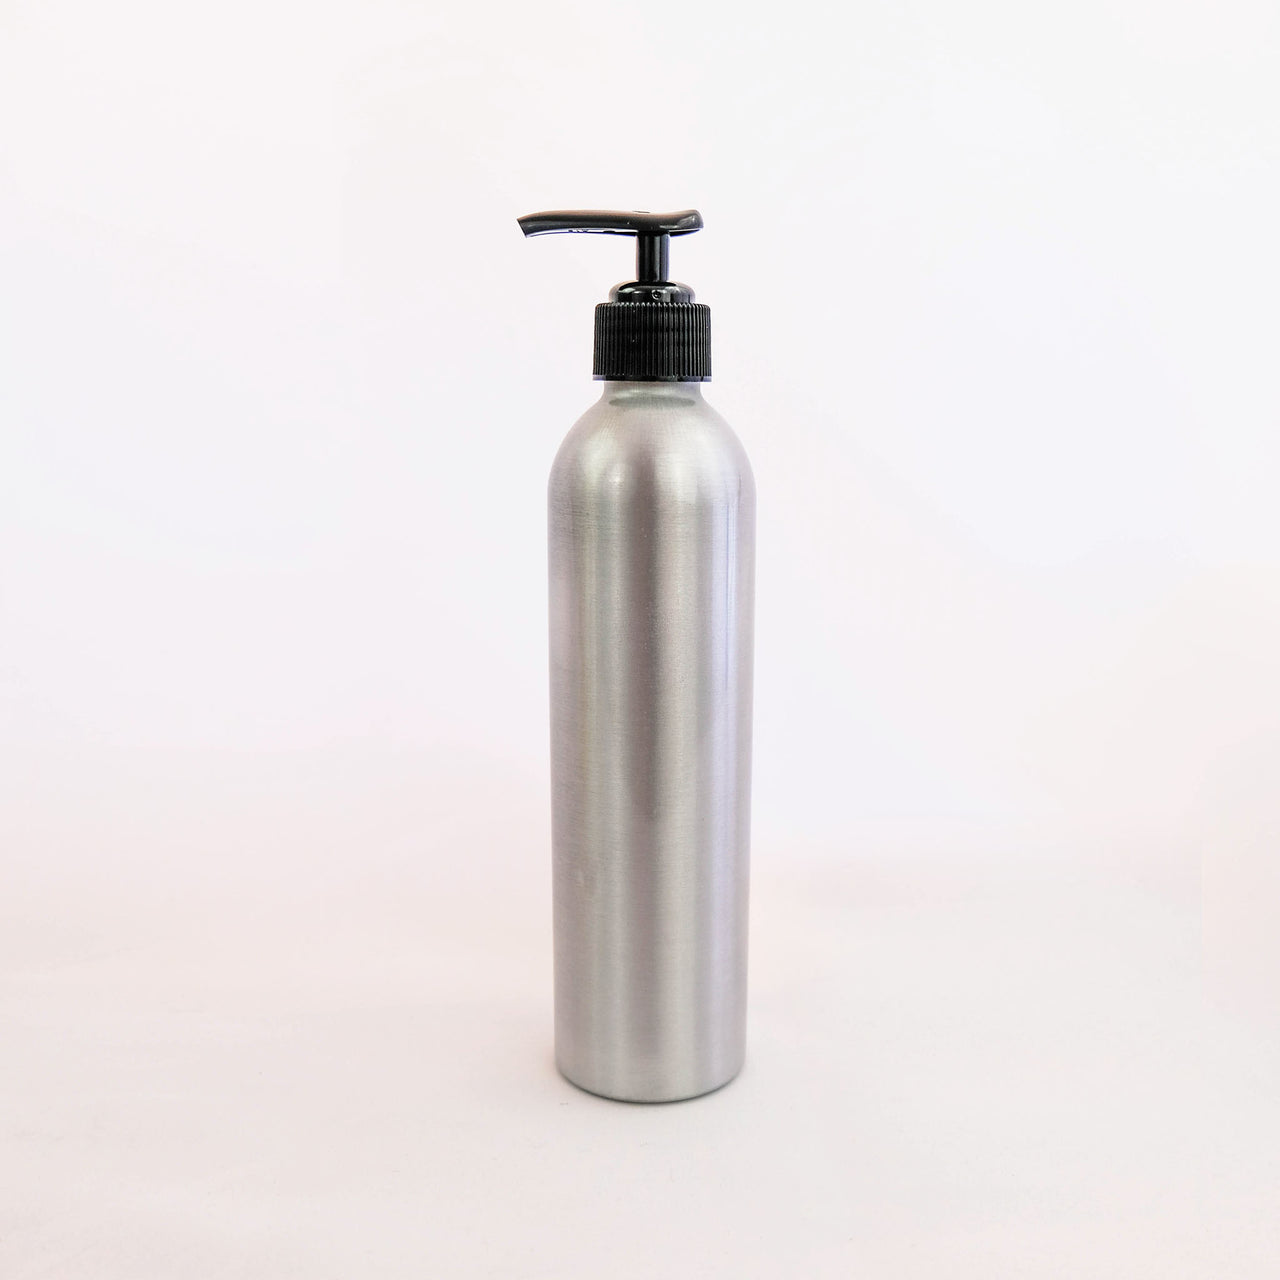 8 oz. Aluminum Pump Bottle